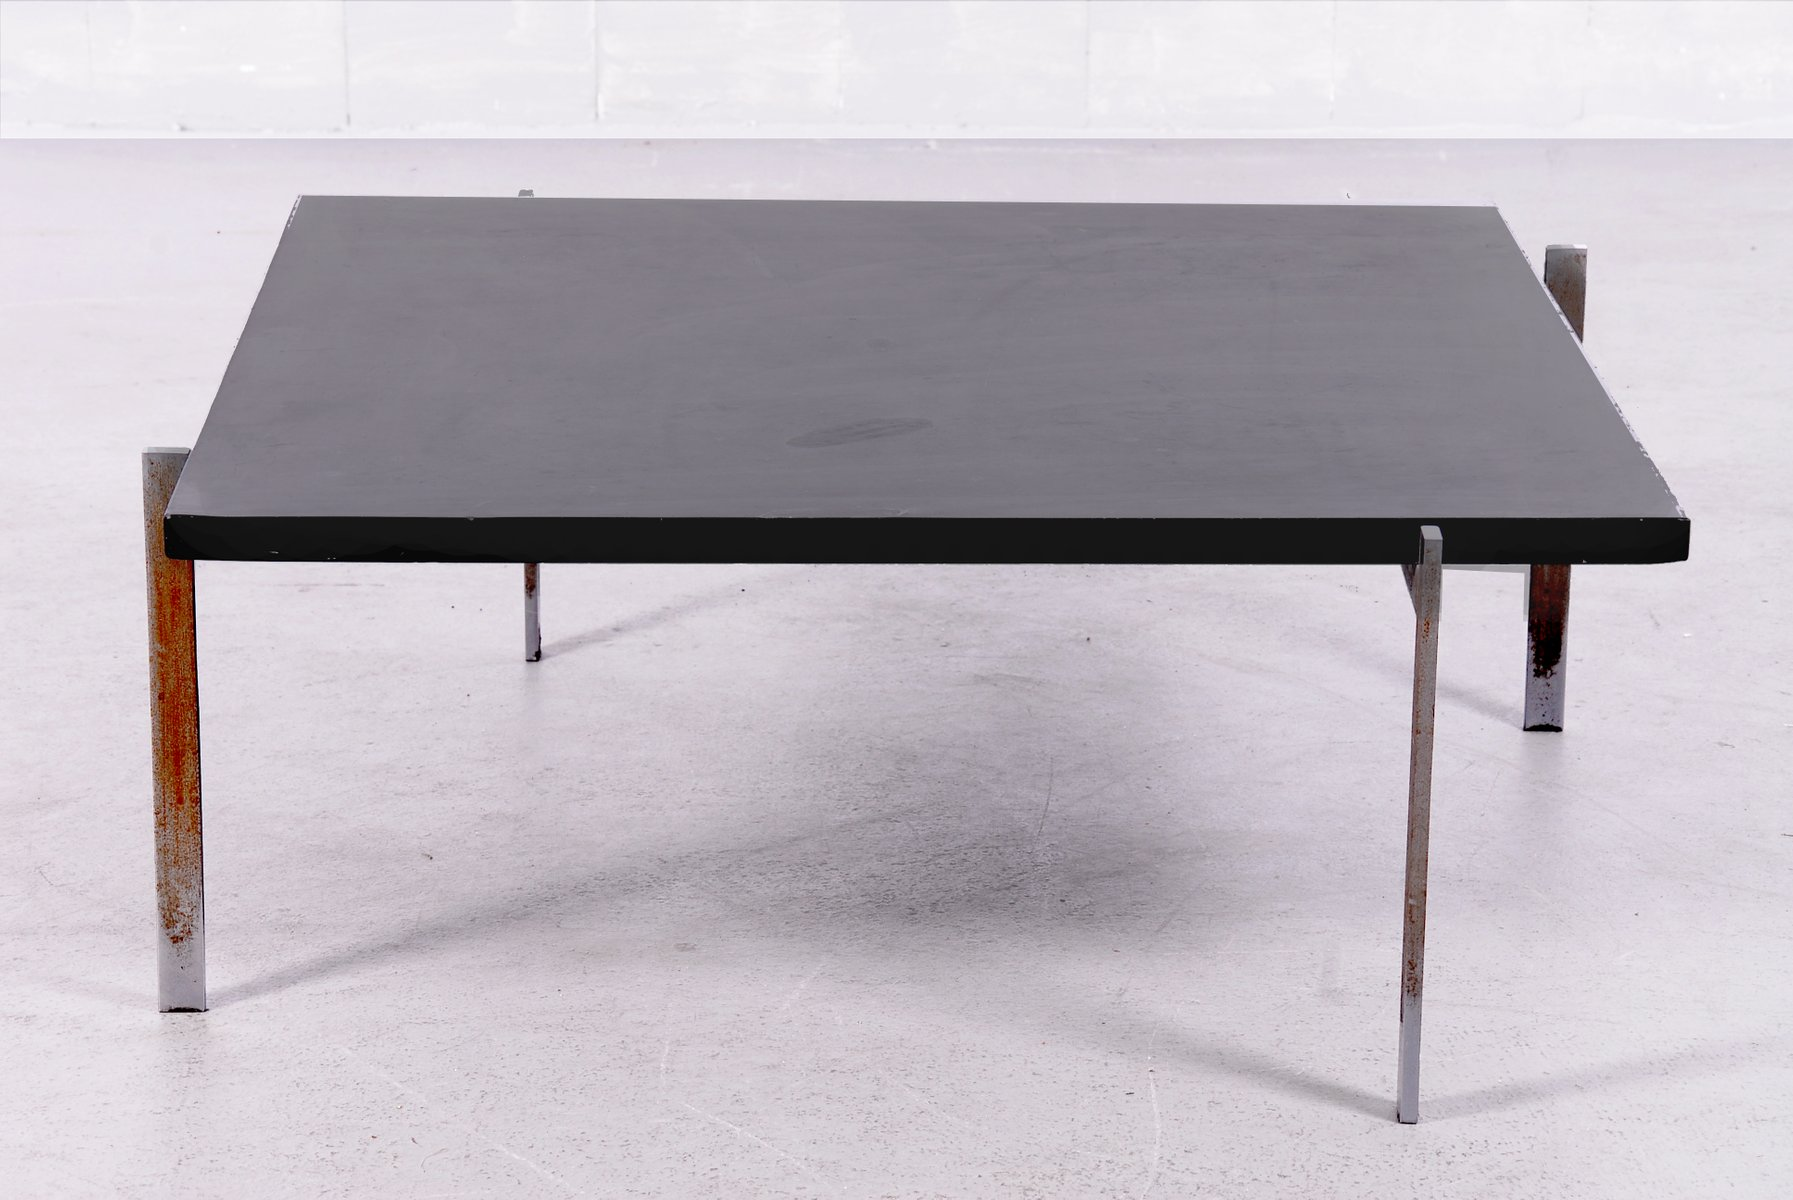 Vintage PK61 Coffee Table with Black Slate Top by Poul Kjaerholm